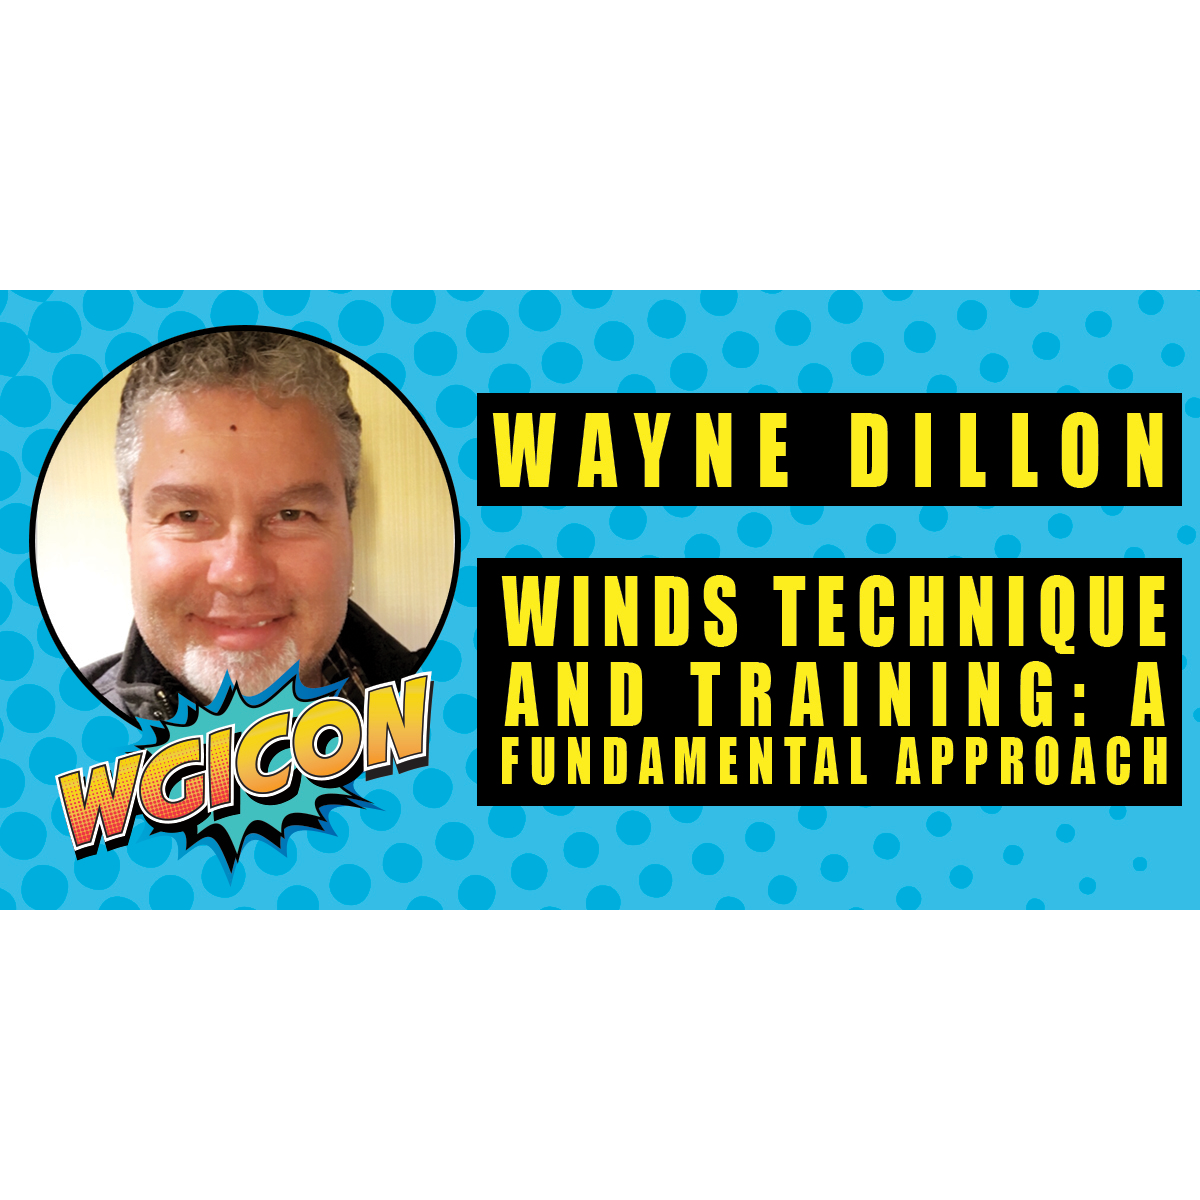 WGIcon Education Snapshot: Winds Technique and Training